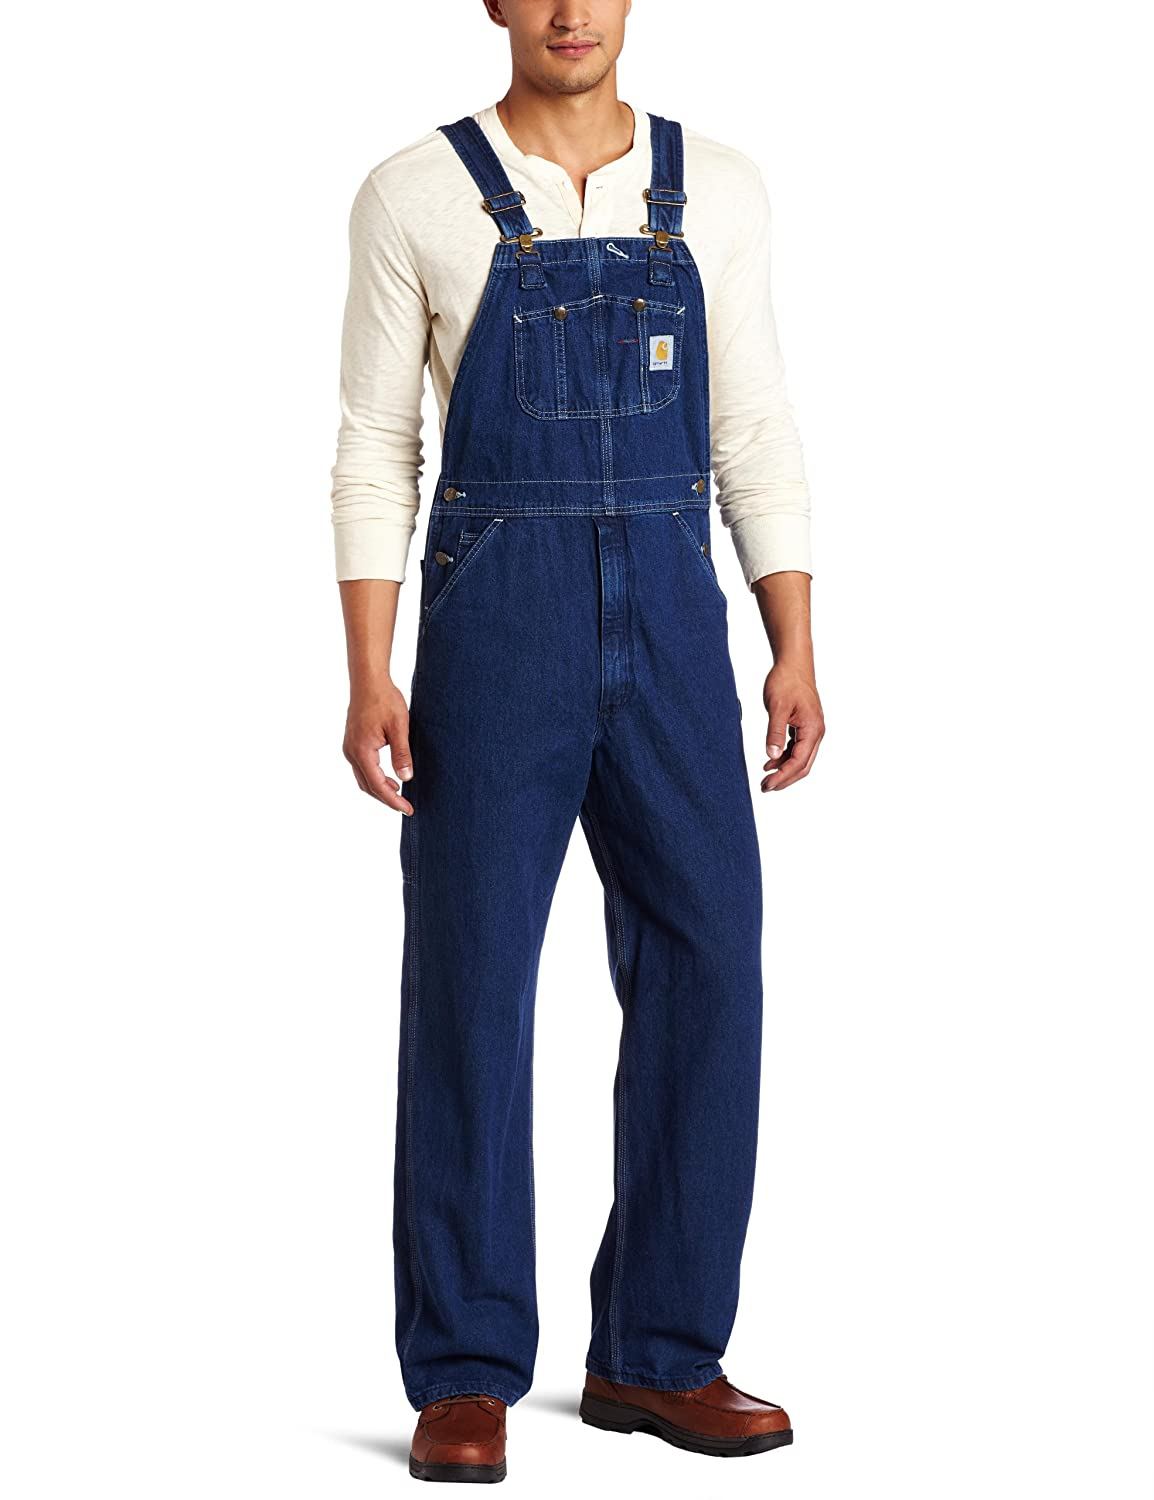 Guys in Bib Overalls Denim Bib Overall Unlined